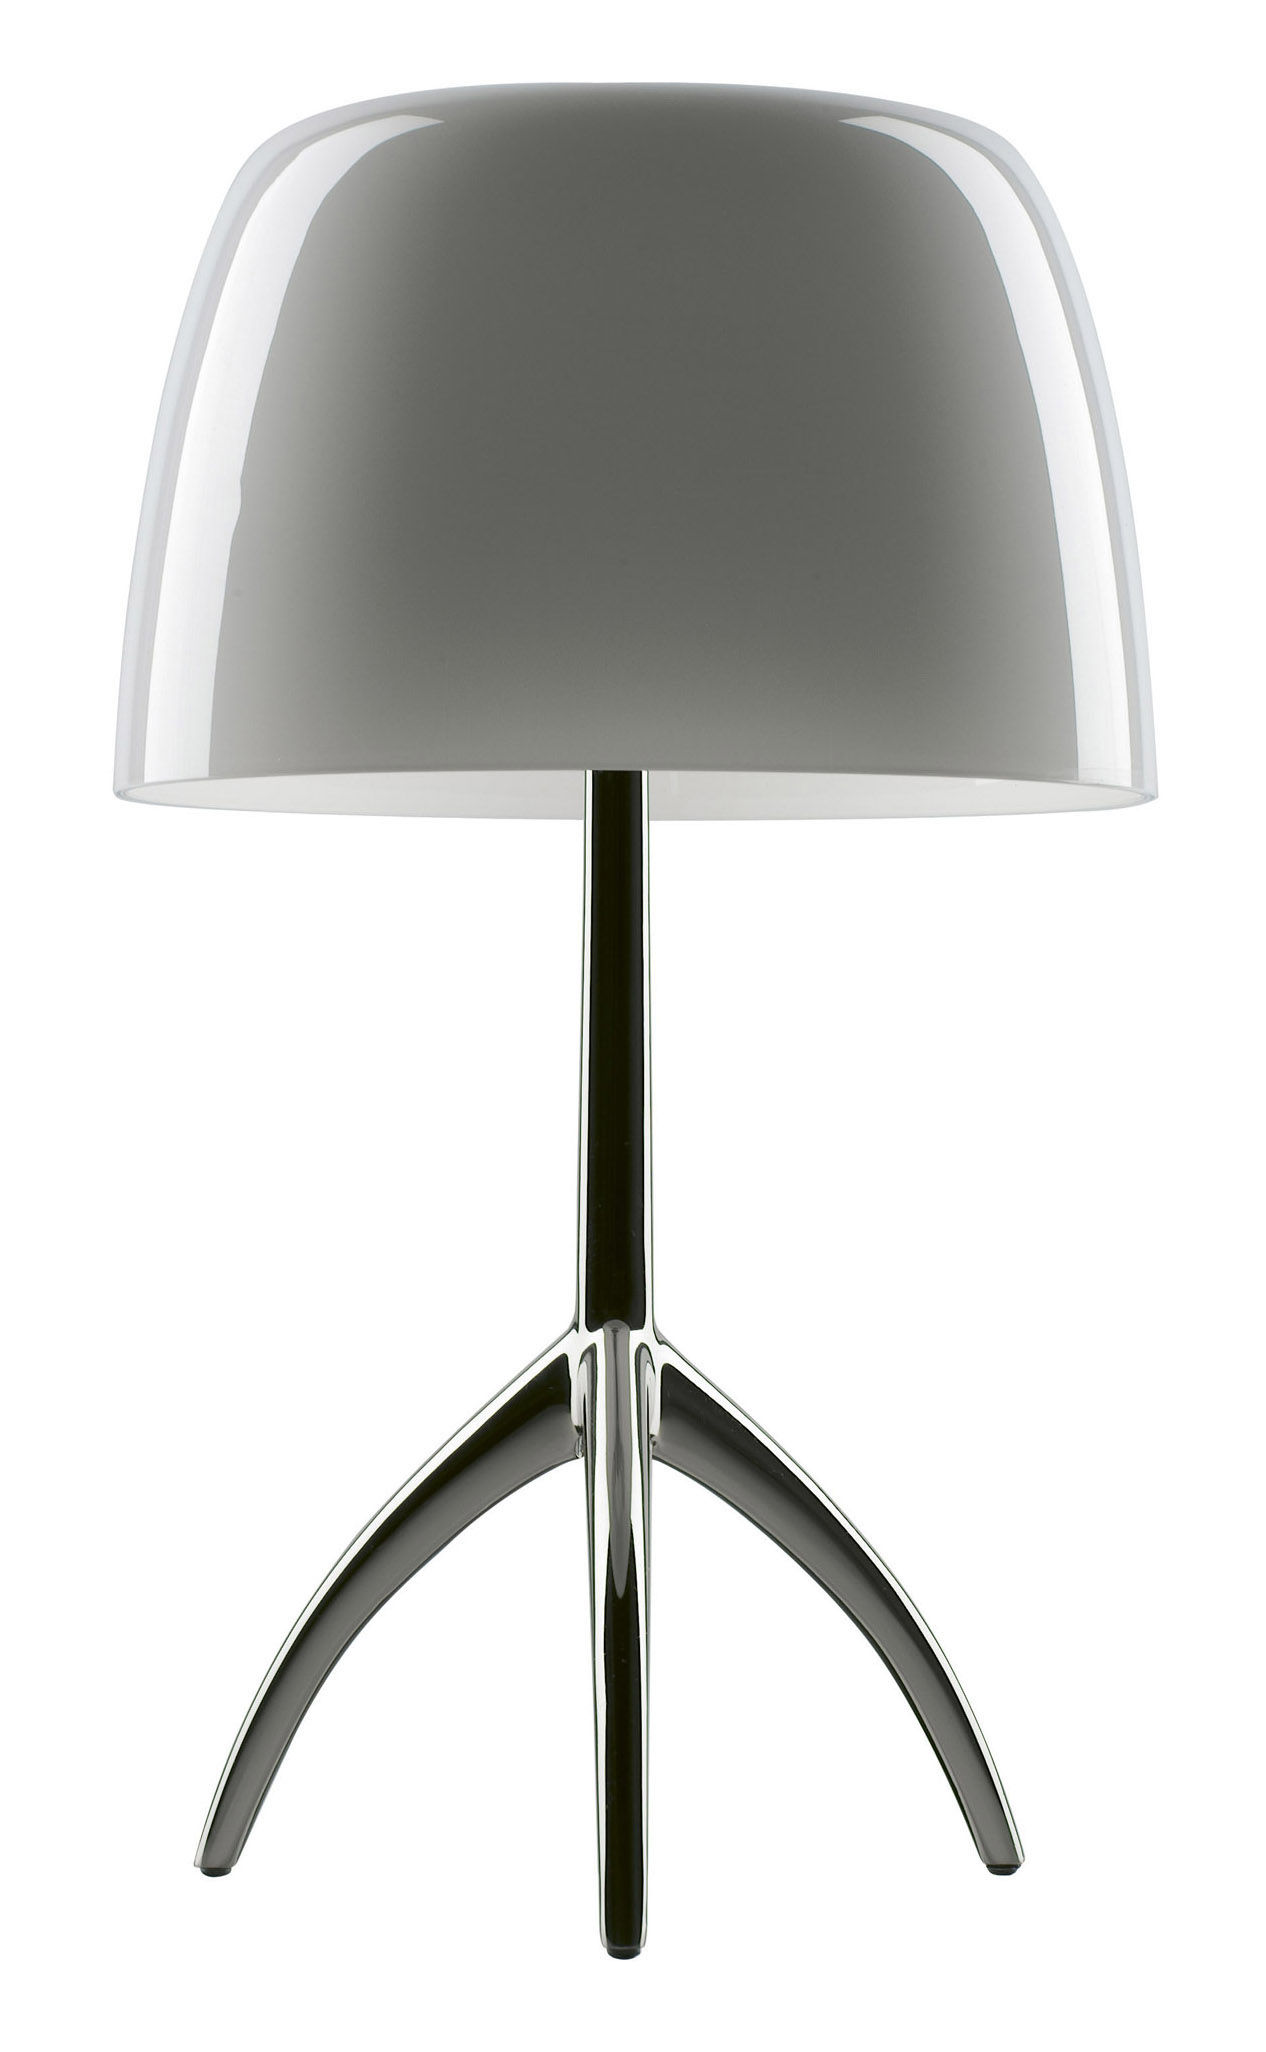 Lumi re grande table lamp grey chromed black base by for Design table lamp giffy 17 7